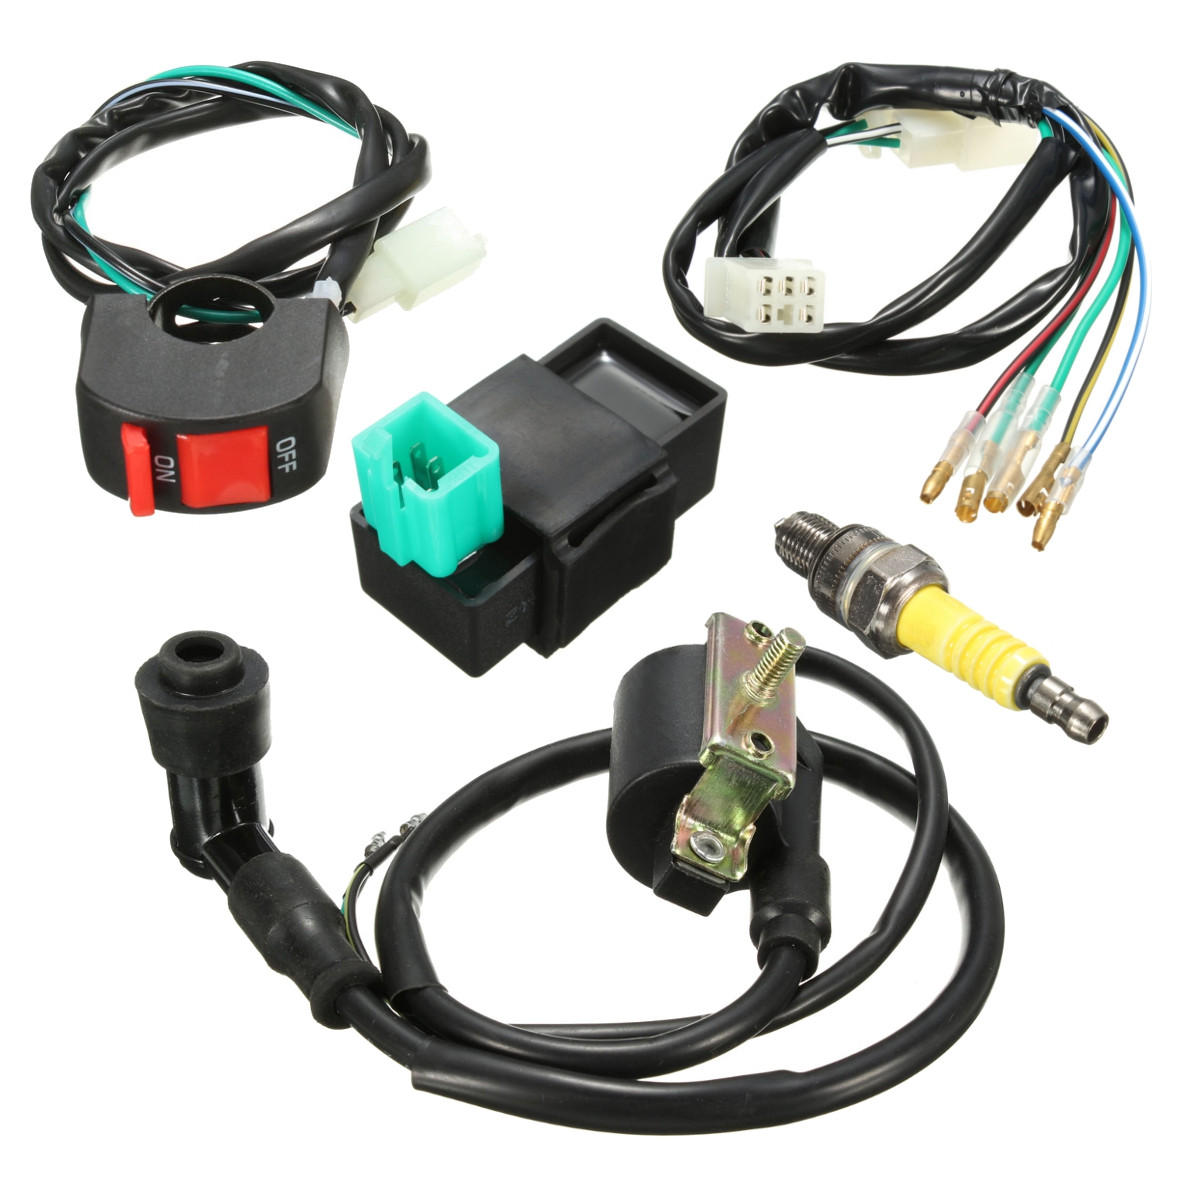 hight resolution of wiring loom kill switch coil cdi spark plug kit for 110cc 125cc 140cc pit bike